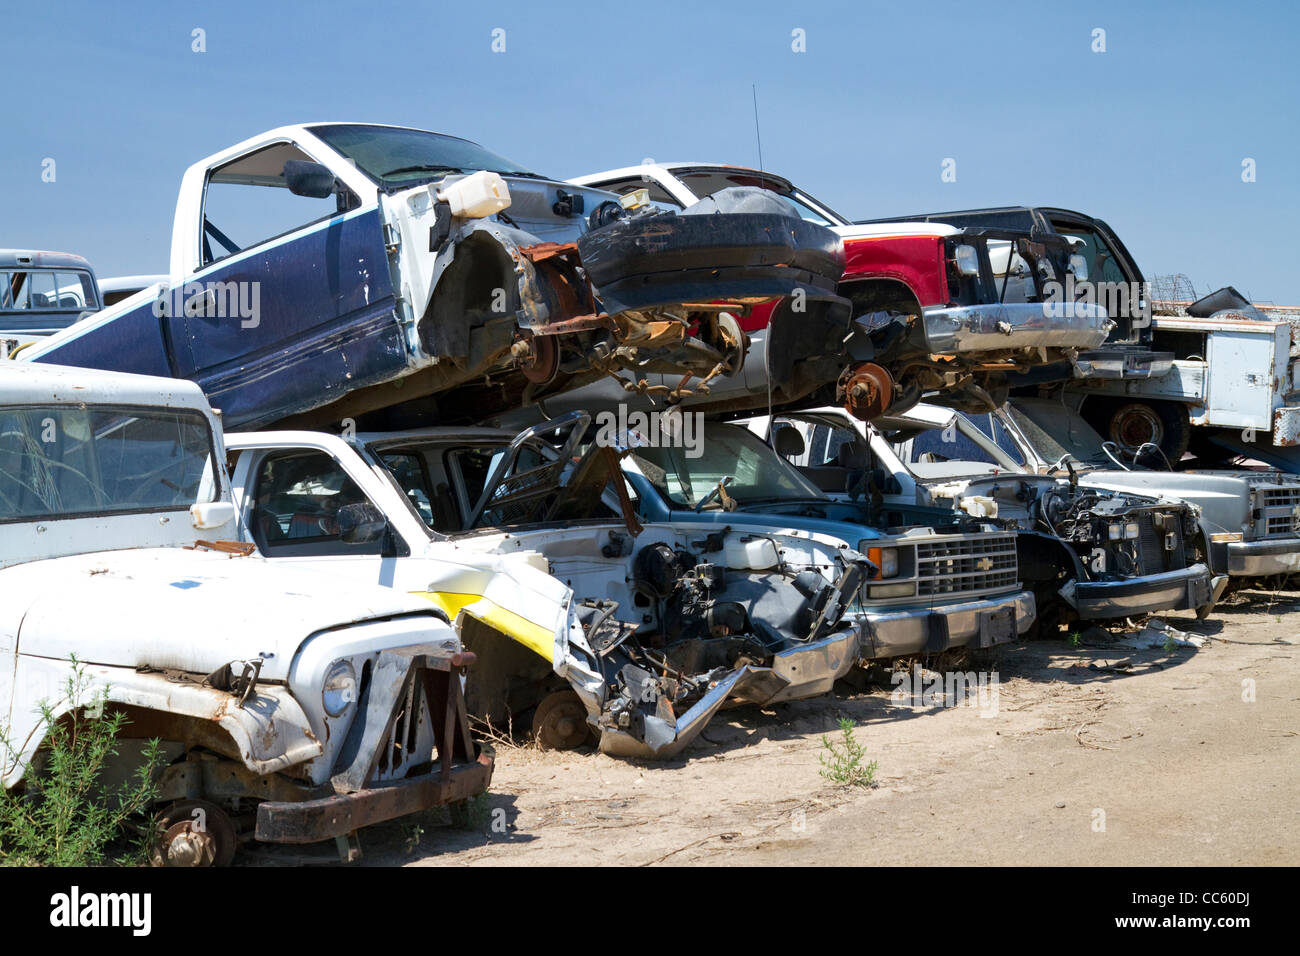 Automobile wrecking yard near Caldwell, Idaho, USA. - Stock Image